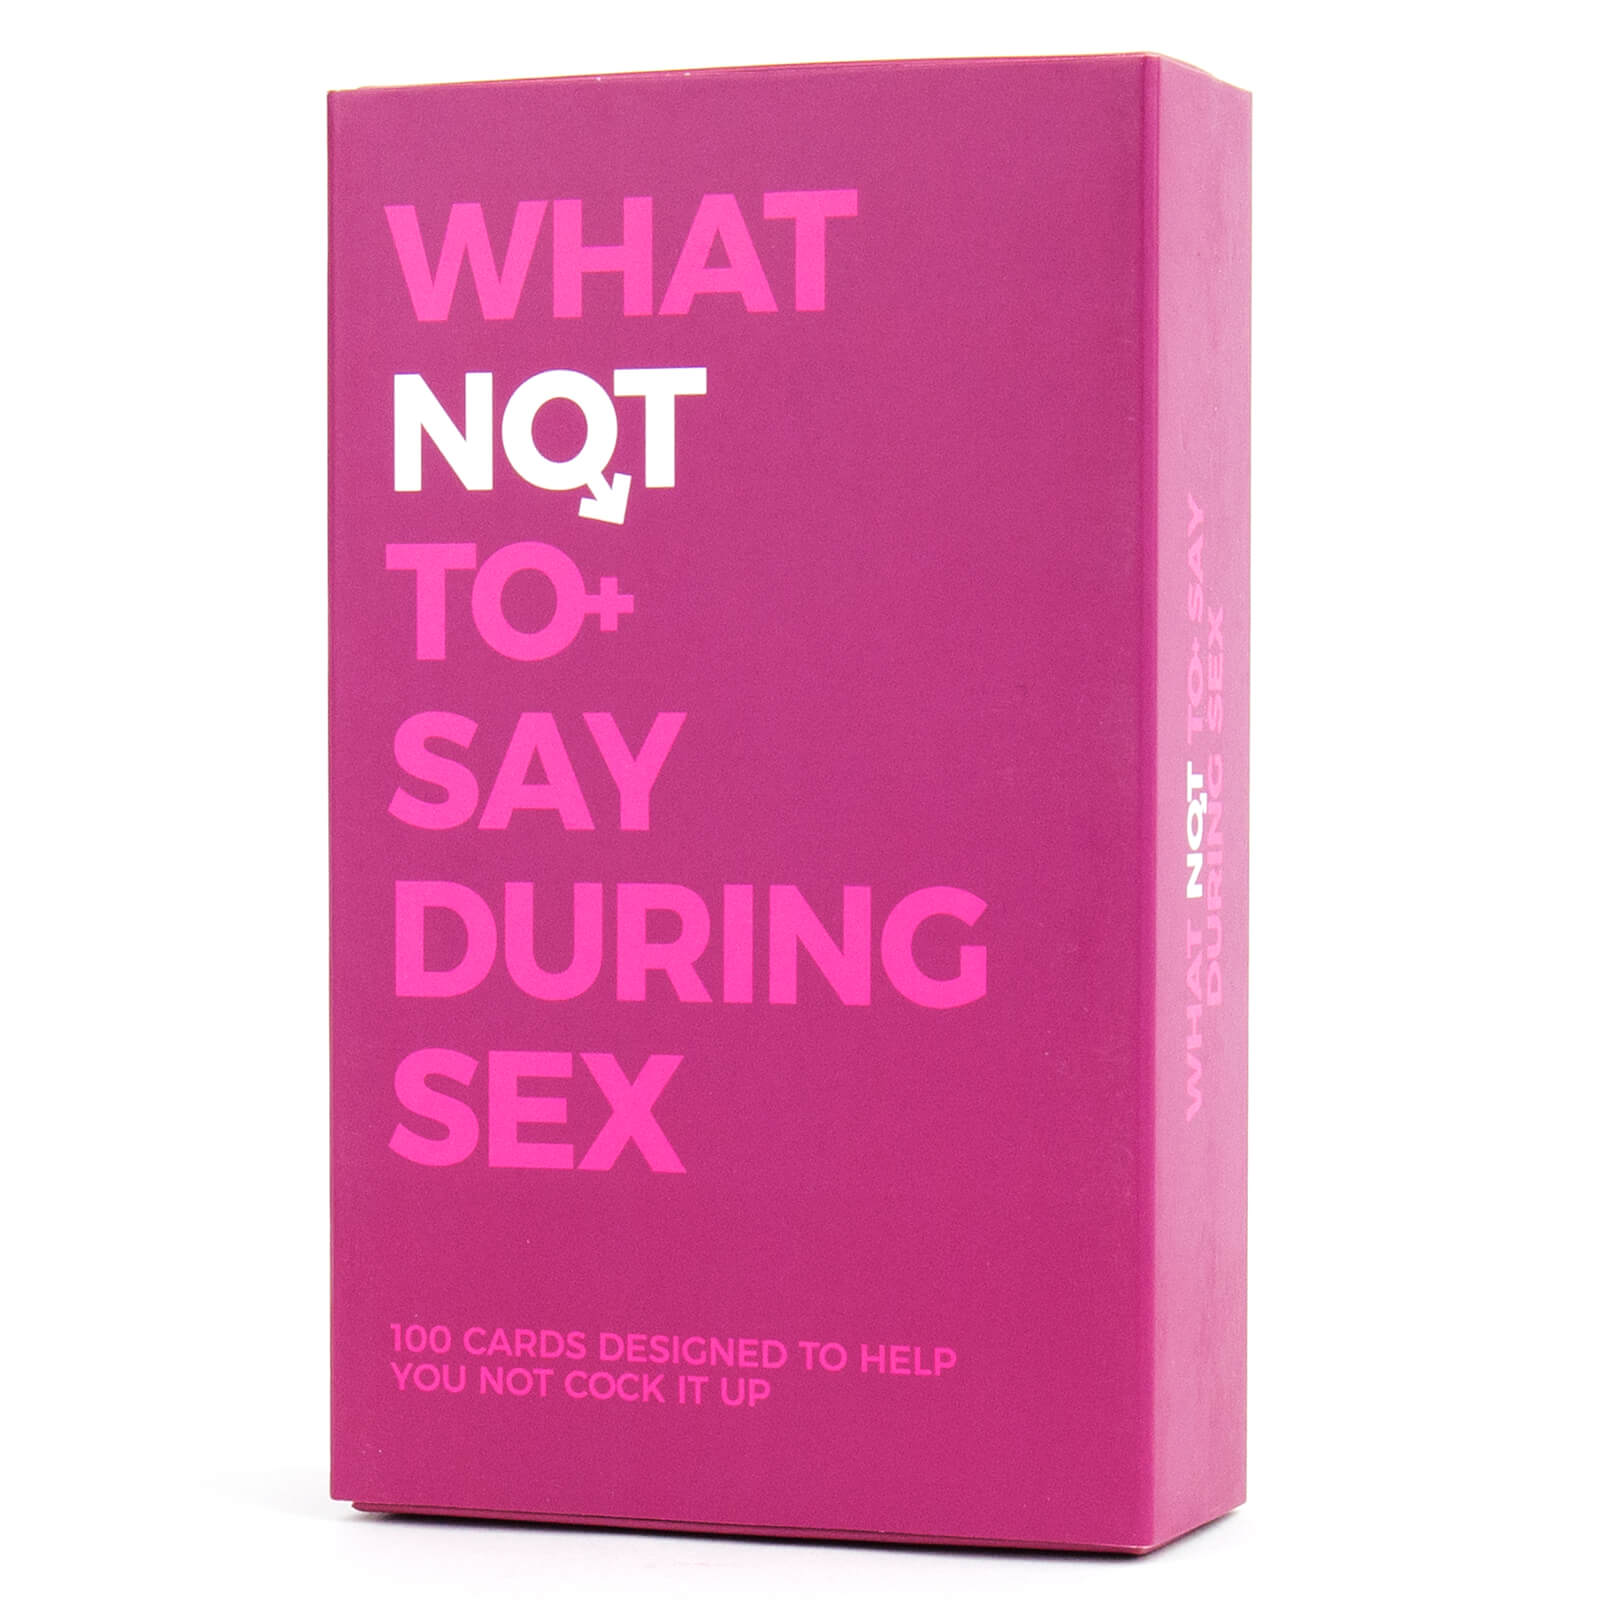 Image of What Not to Say During Sex Cards